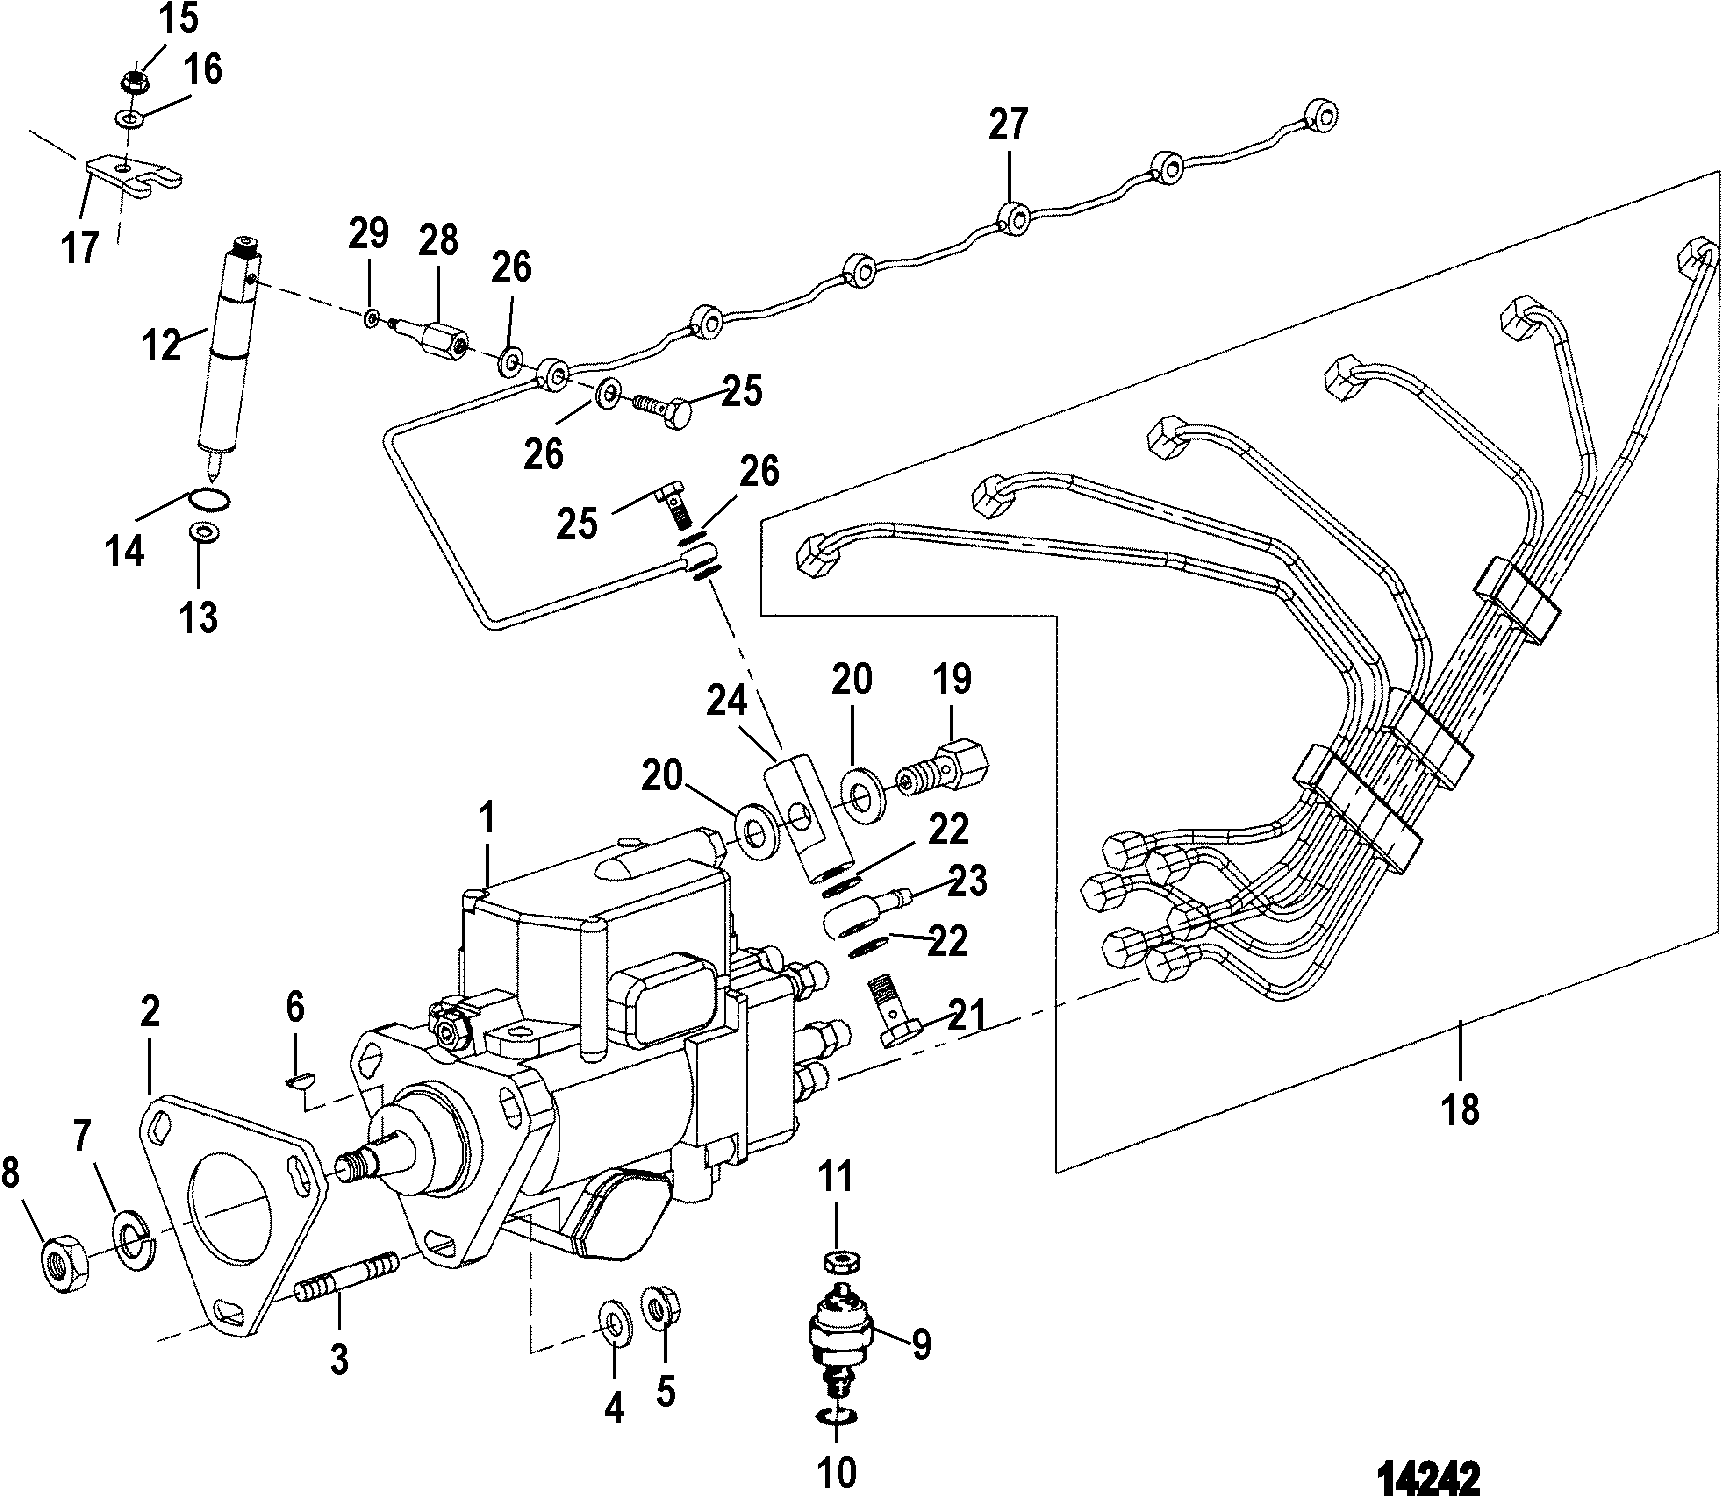 hight resolution of injection pump nozzle and lines